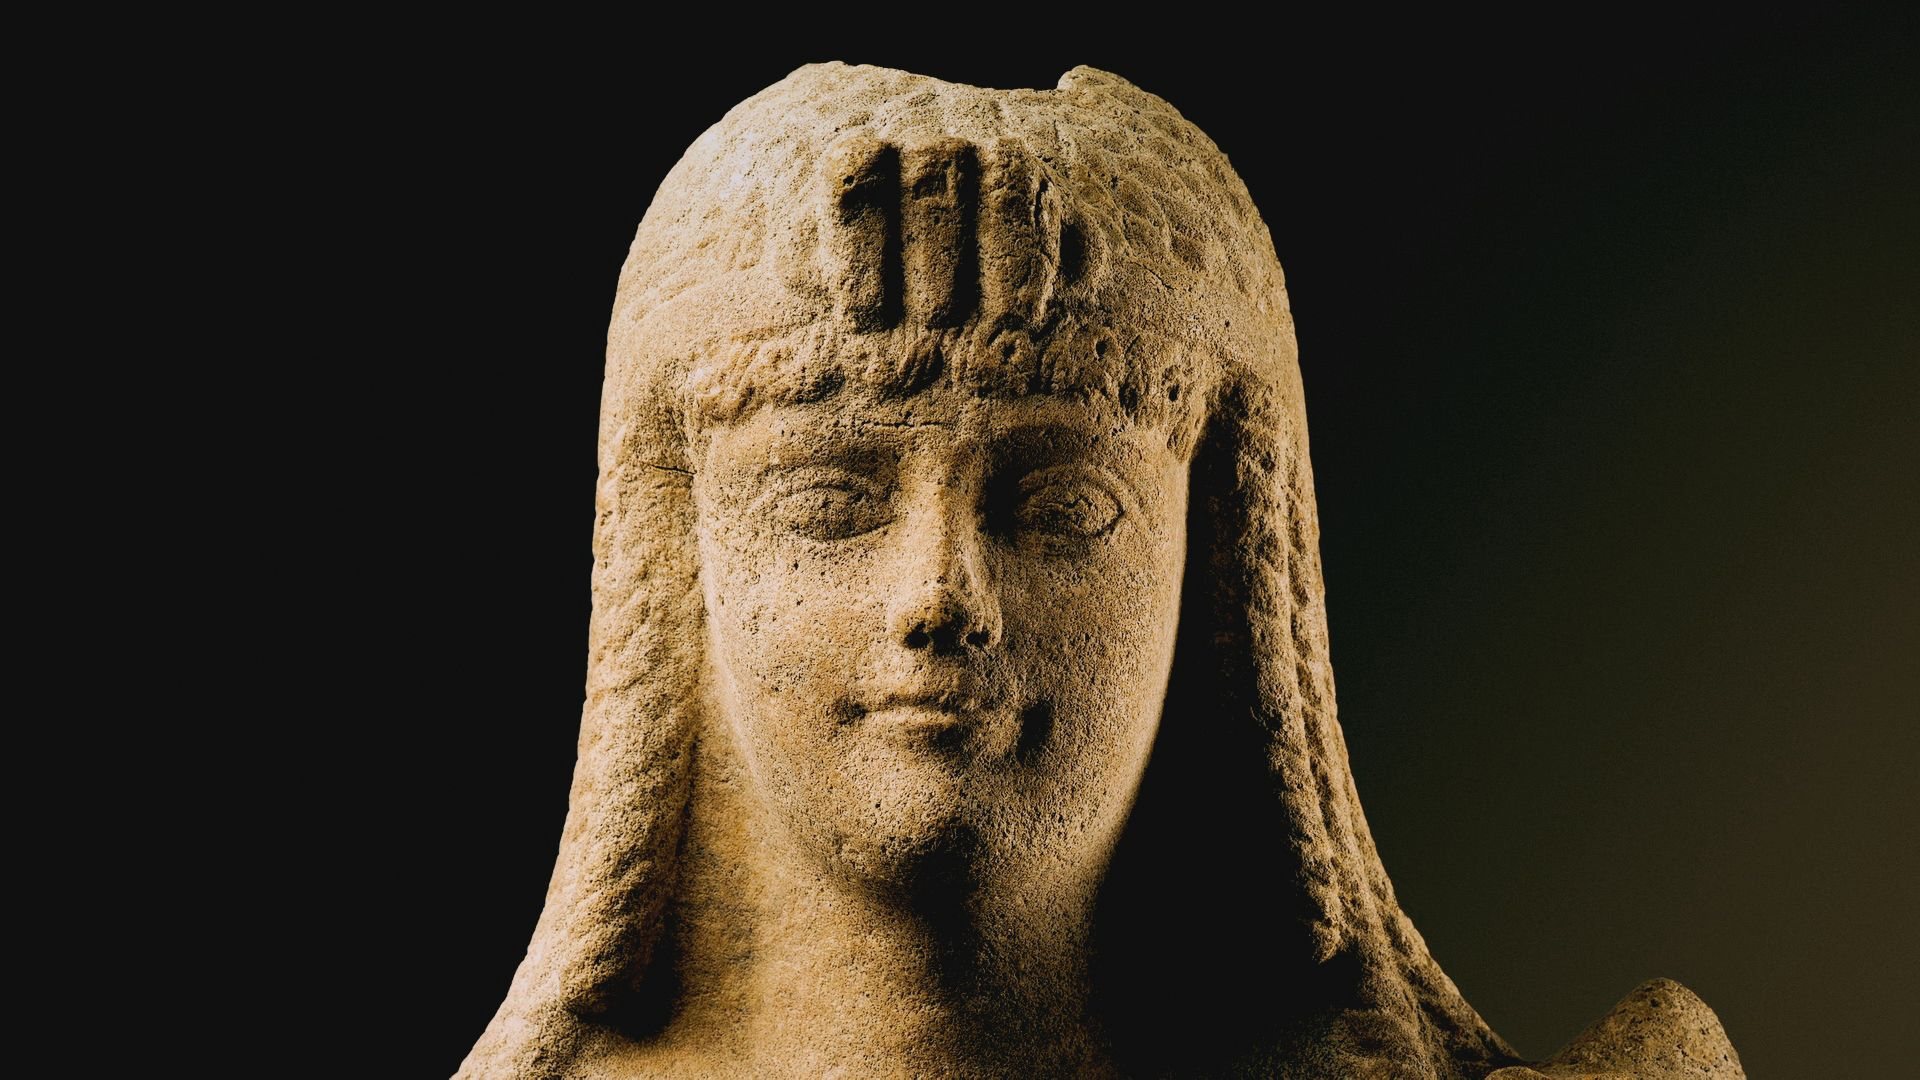 Close up of statue of Cleopatra. This is from Lost Treasures of Egypt, season 3. [Photo of the day - September 2021]